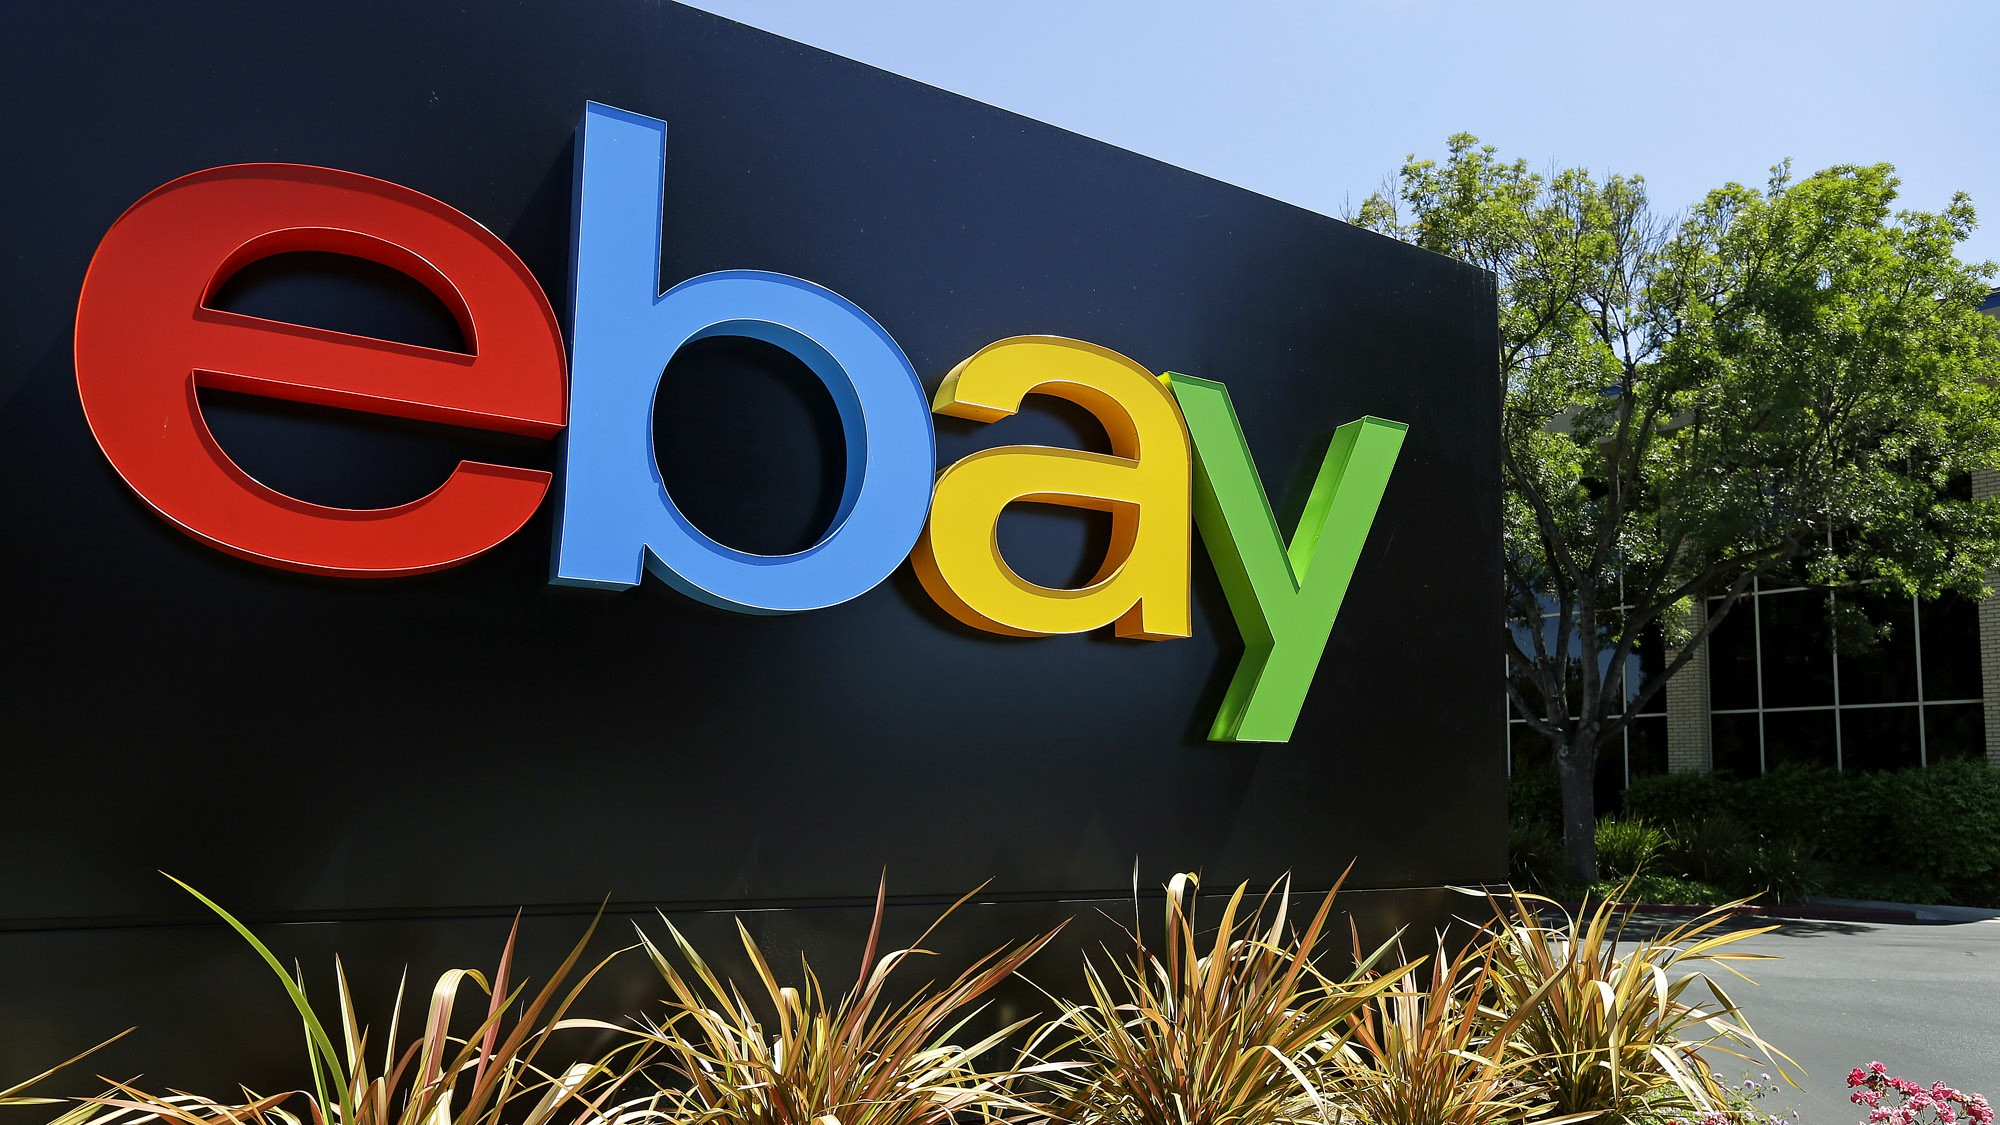 Best selling items on ebay reviews find out what sells best on ebay - Why Look For An Ebay